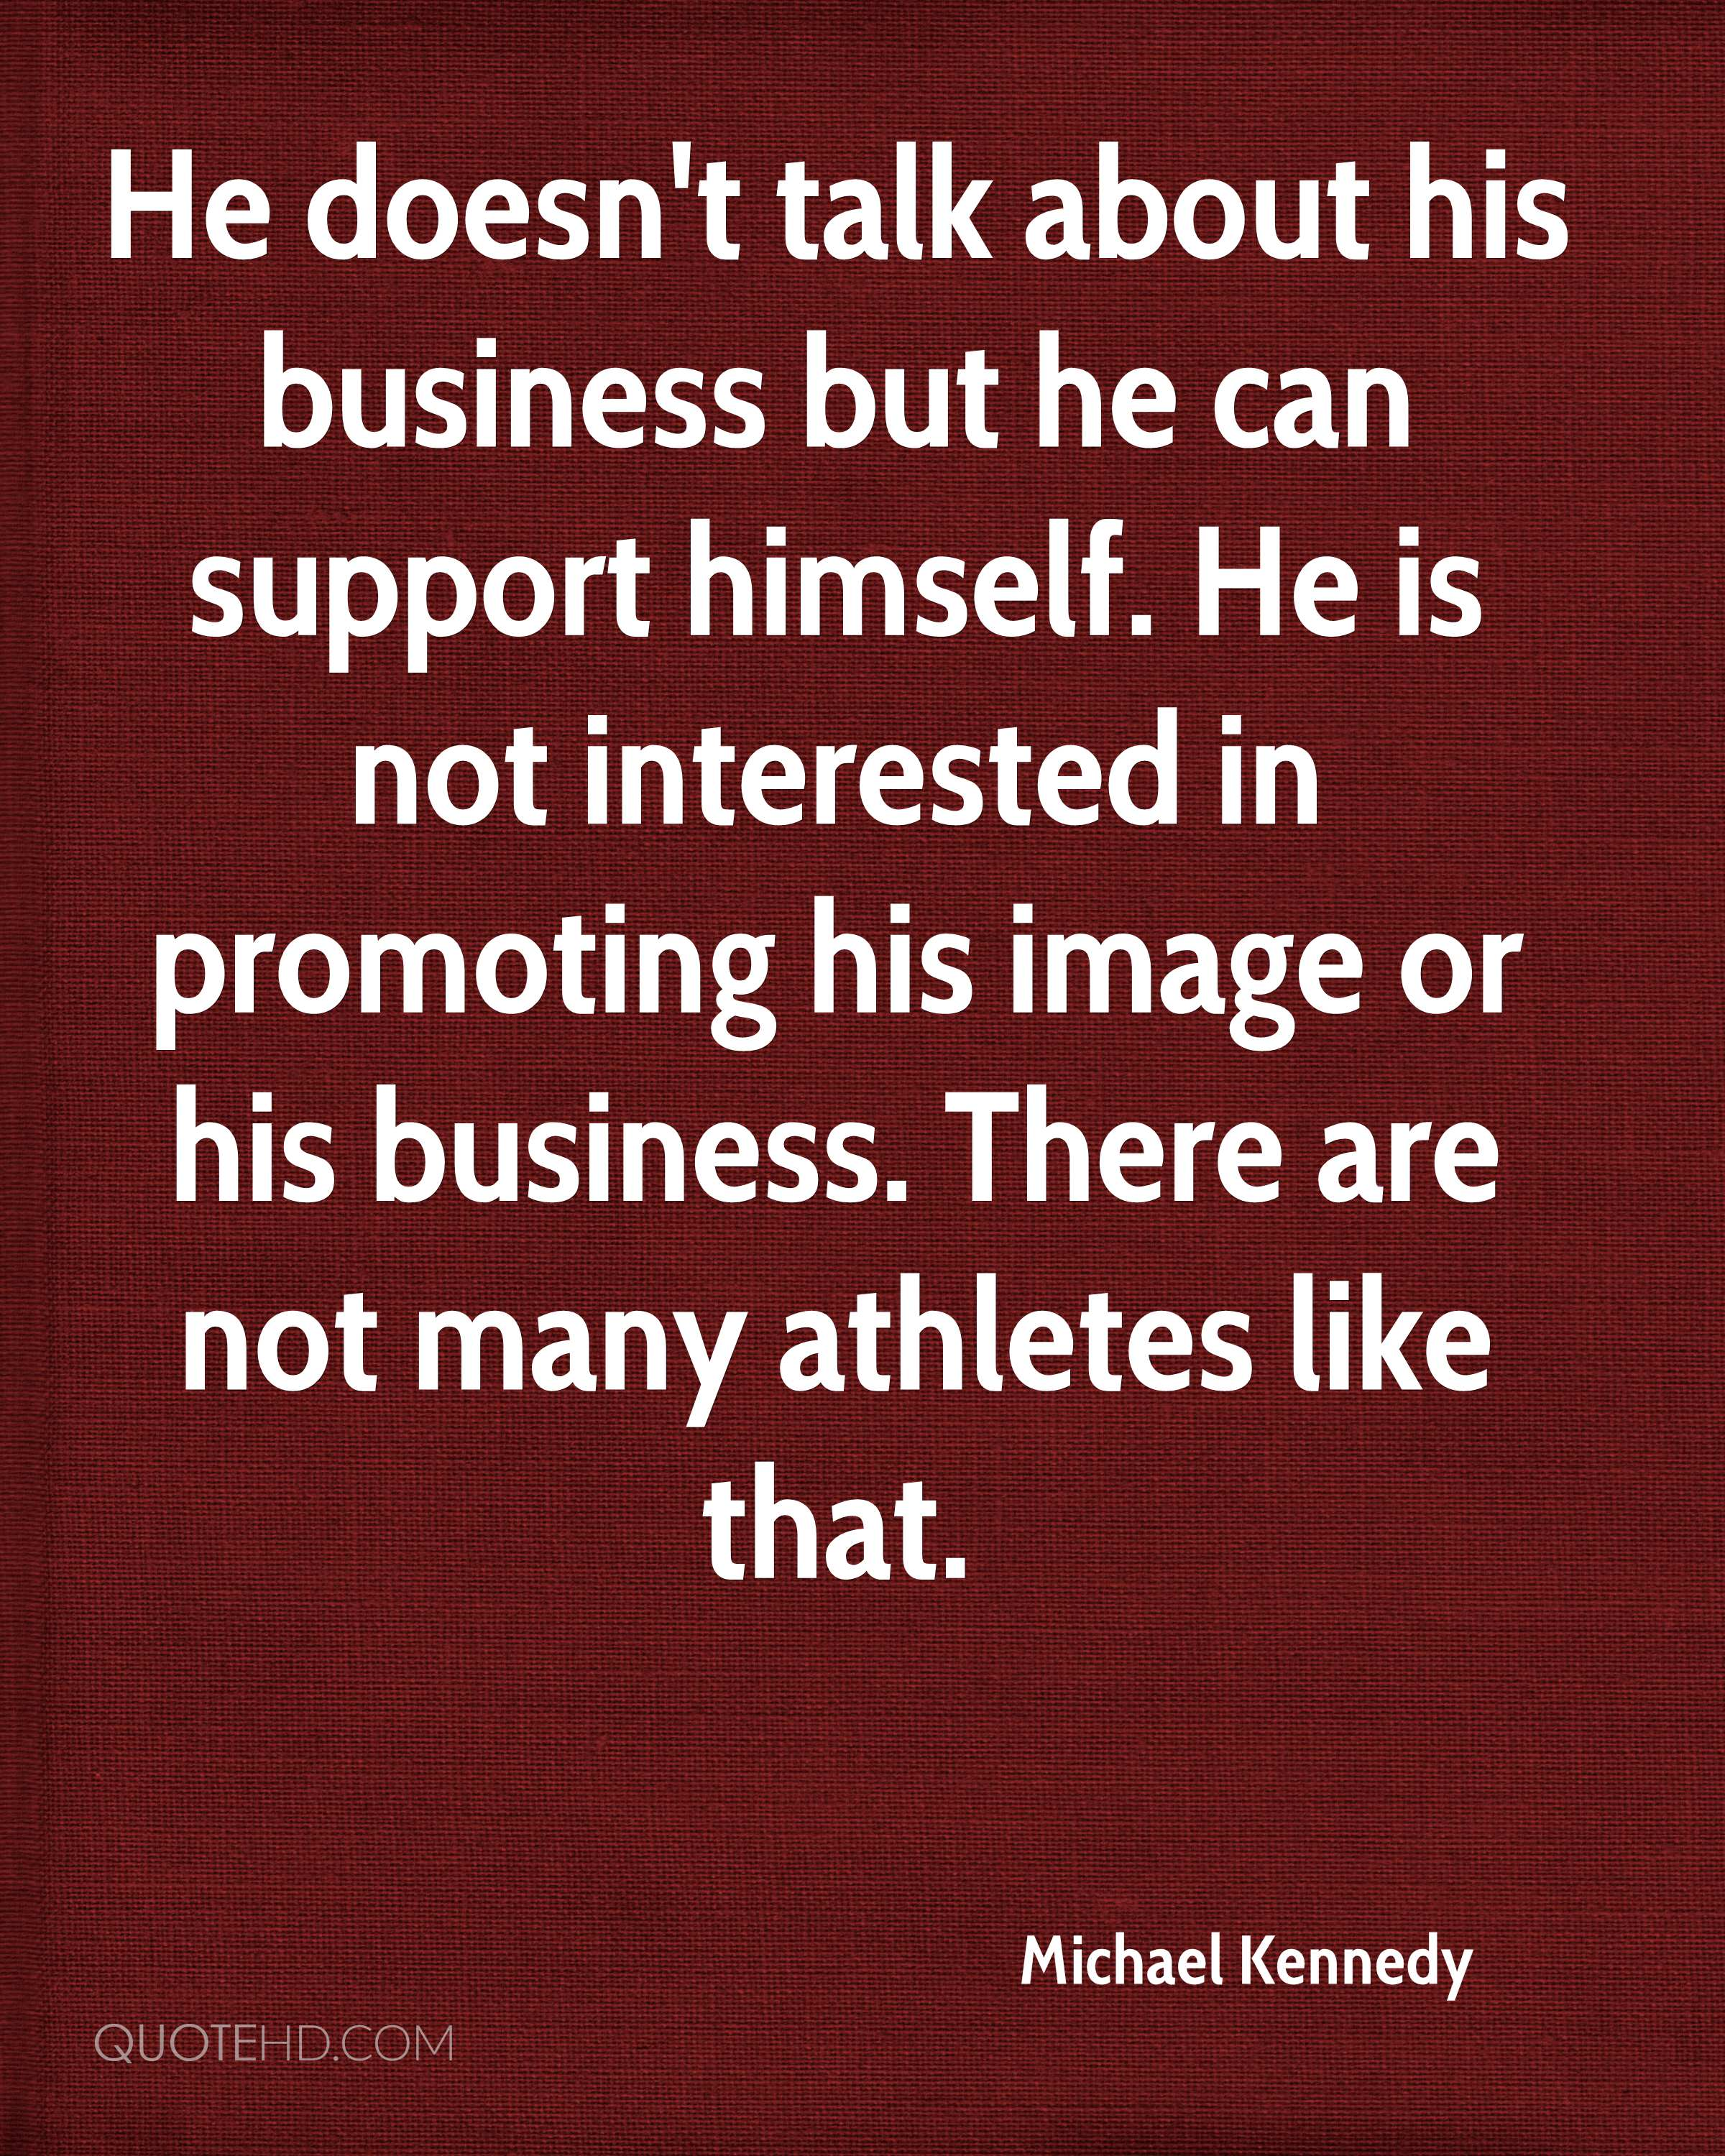 He doesn't talk about his business but he can support himself. He is not interested in promoting his image or his business. There are not many athletes like that.